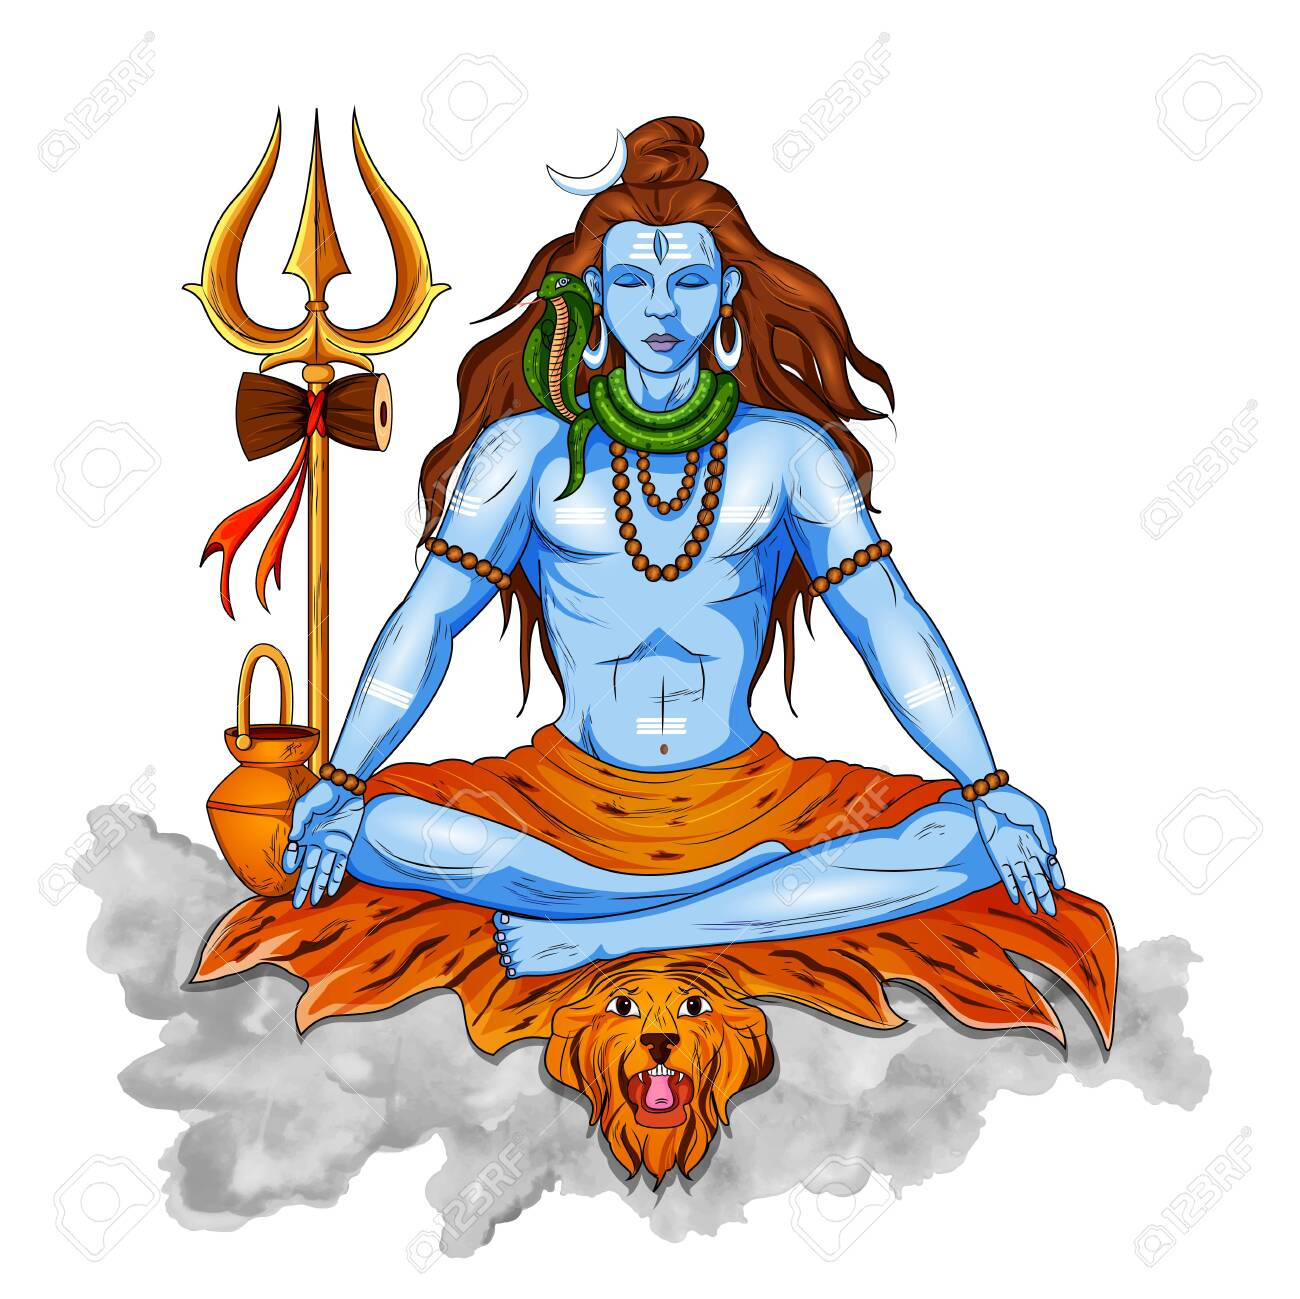 Mahashivaratri is being observed by Hindus